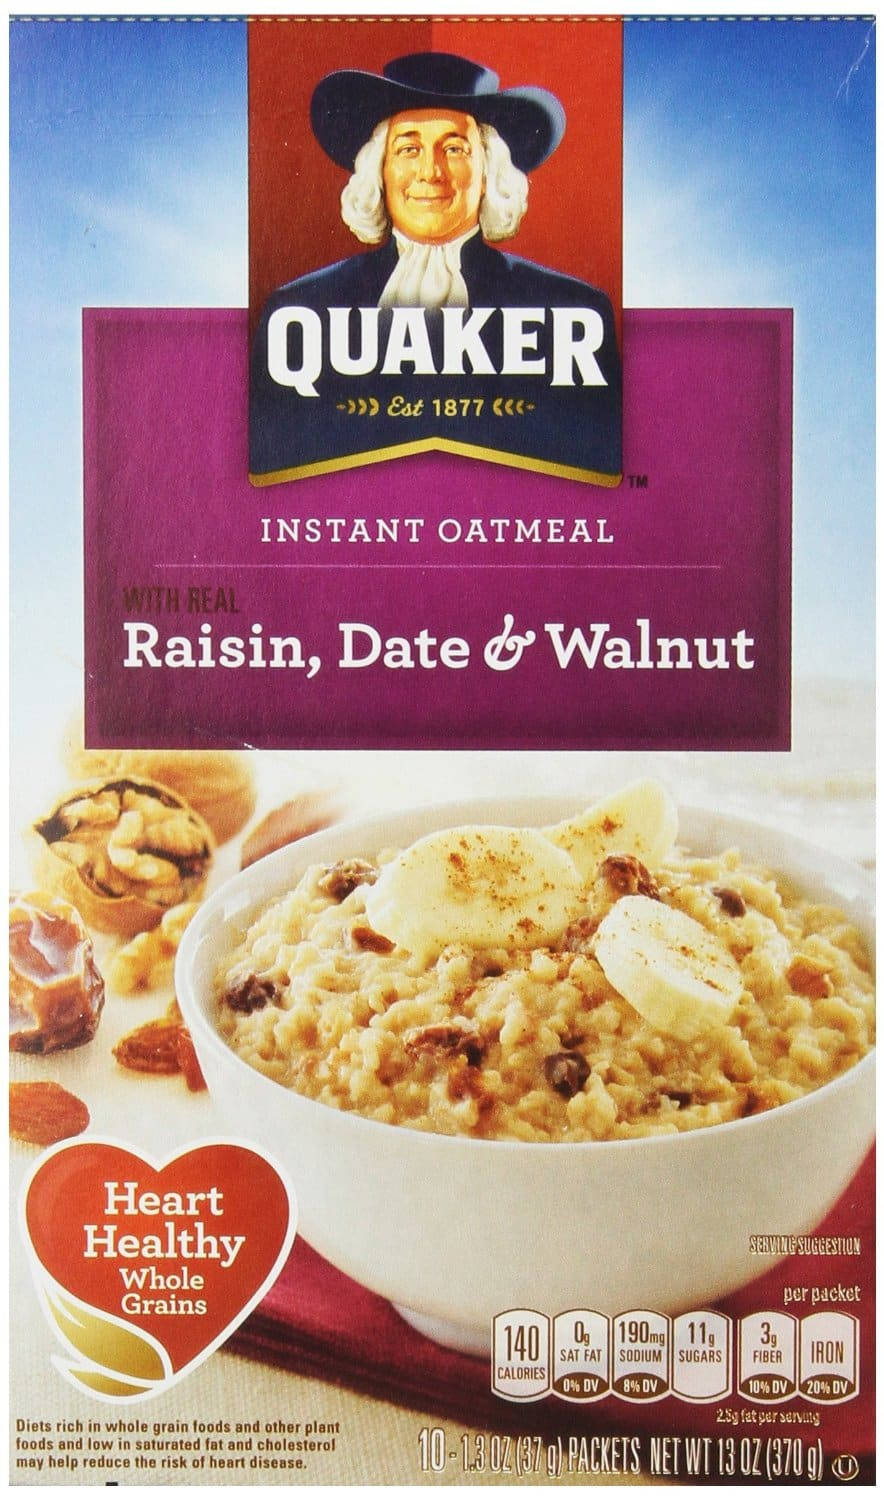 Quaker Instant Oatmeal: 4-Pack of 10-Ct Boxes or 4-Pack of 12-Ct Boxes  from $8